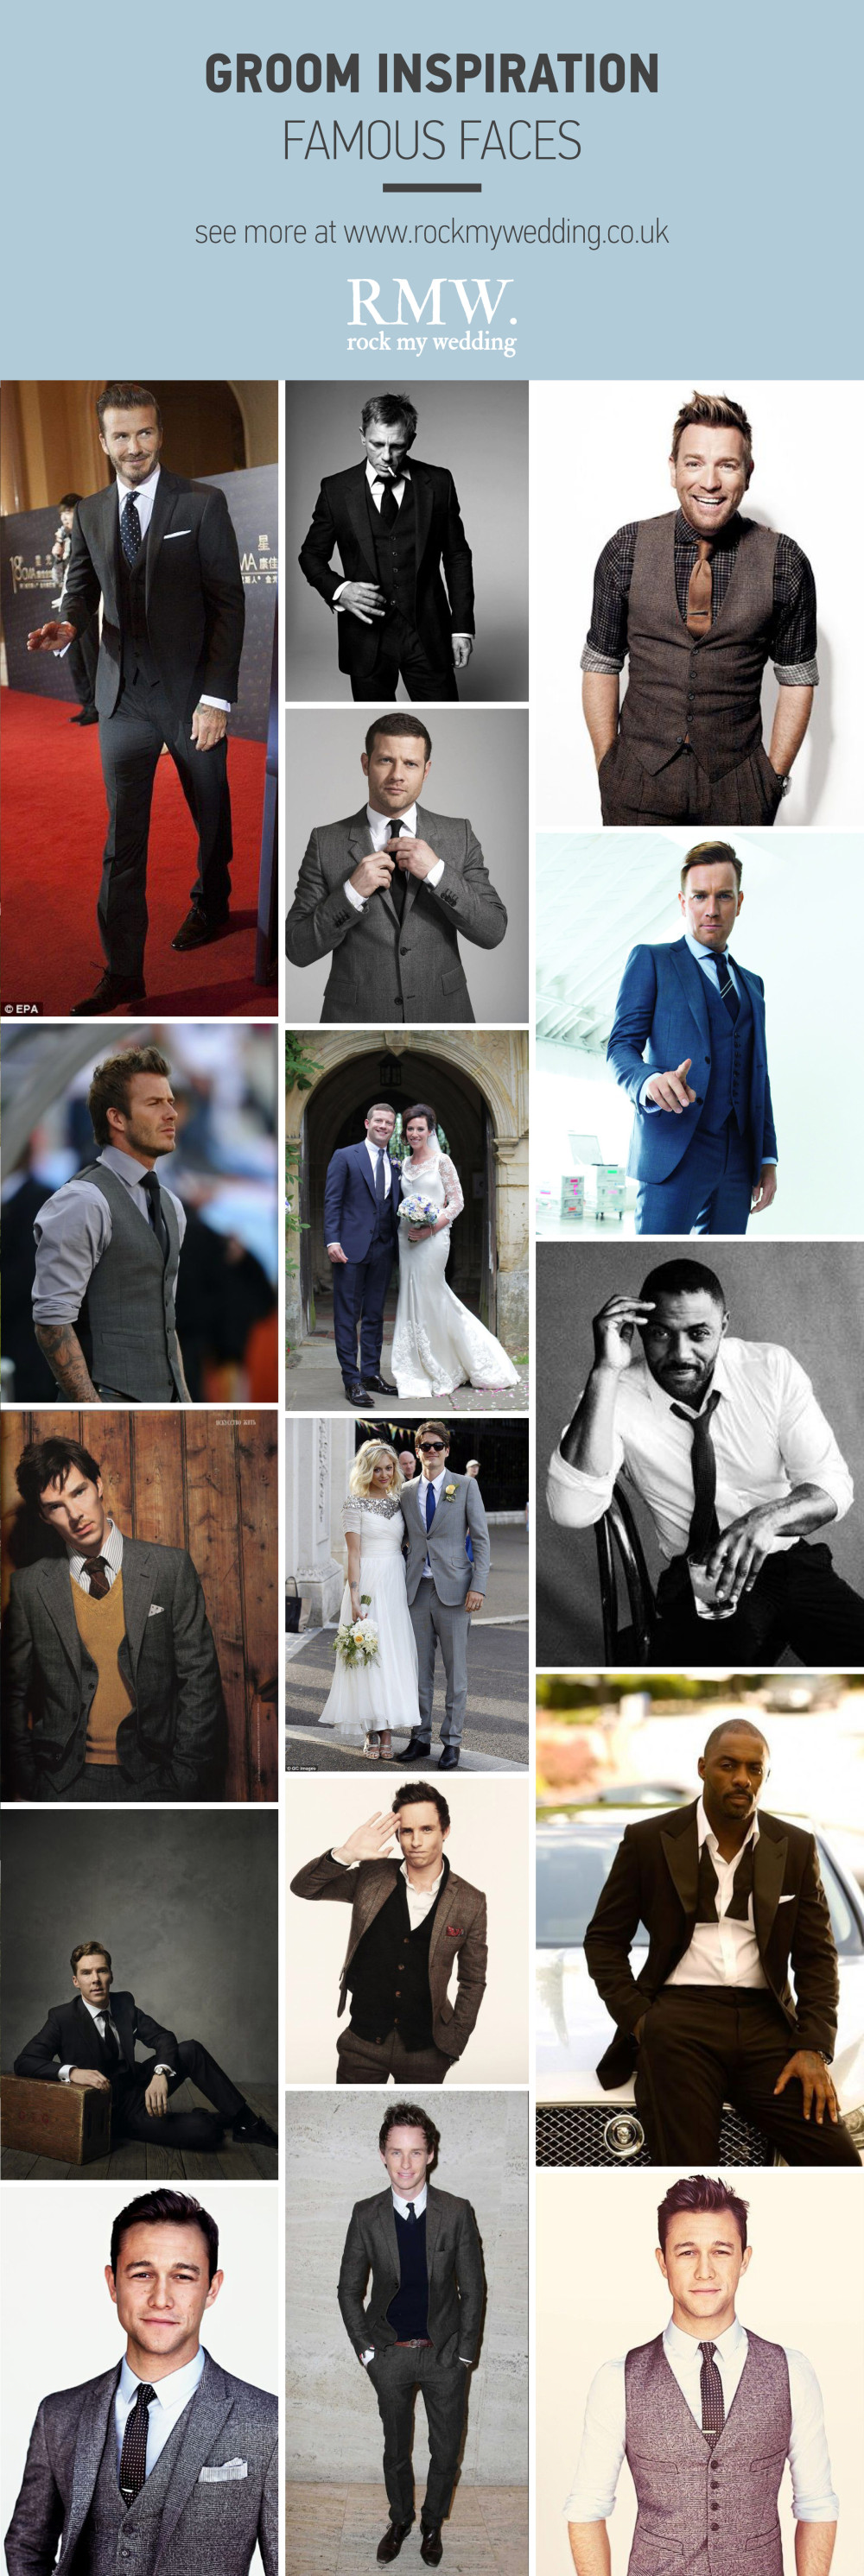 groom-inspiration-famous-faces